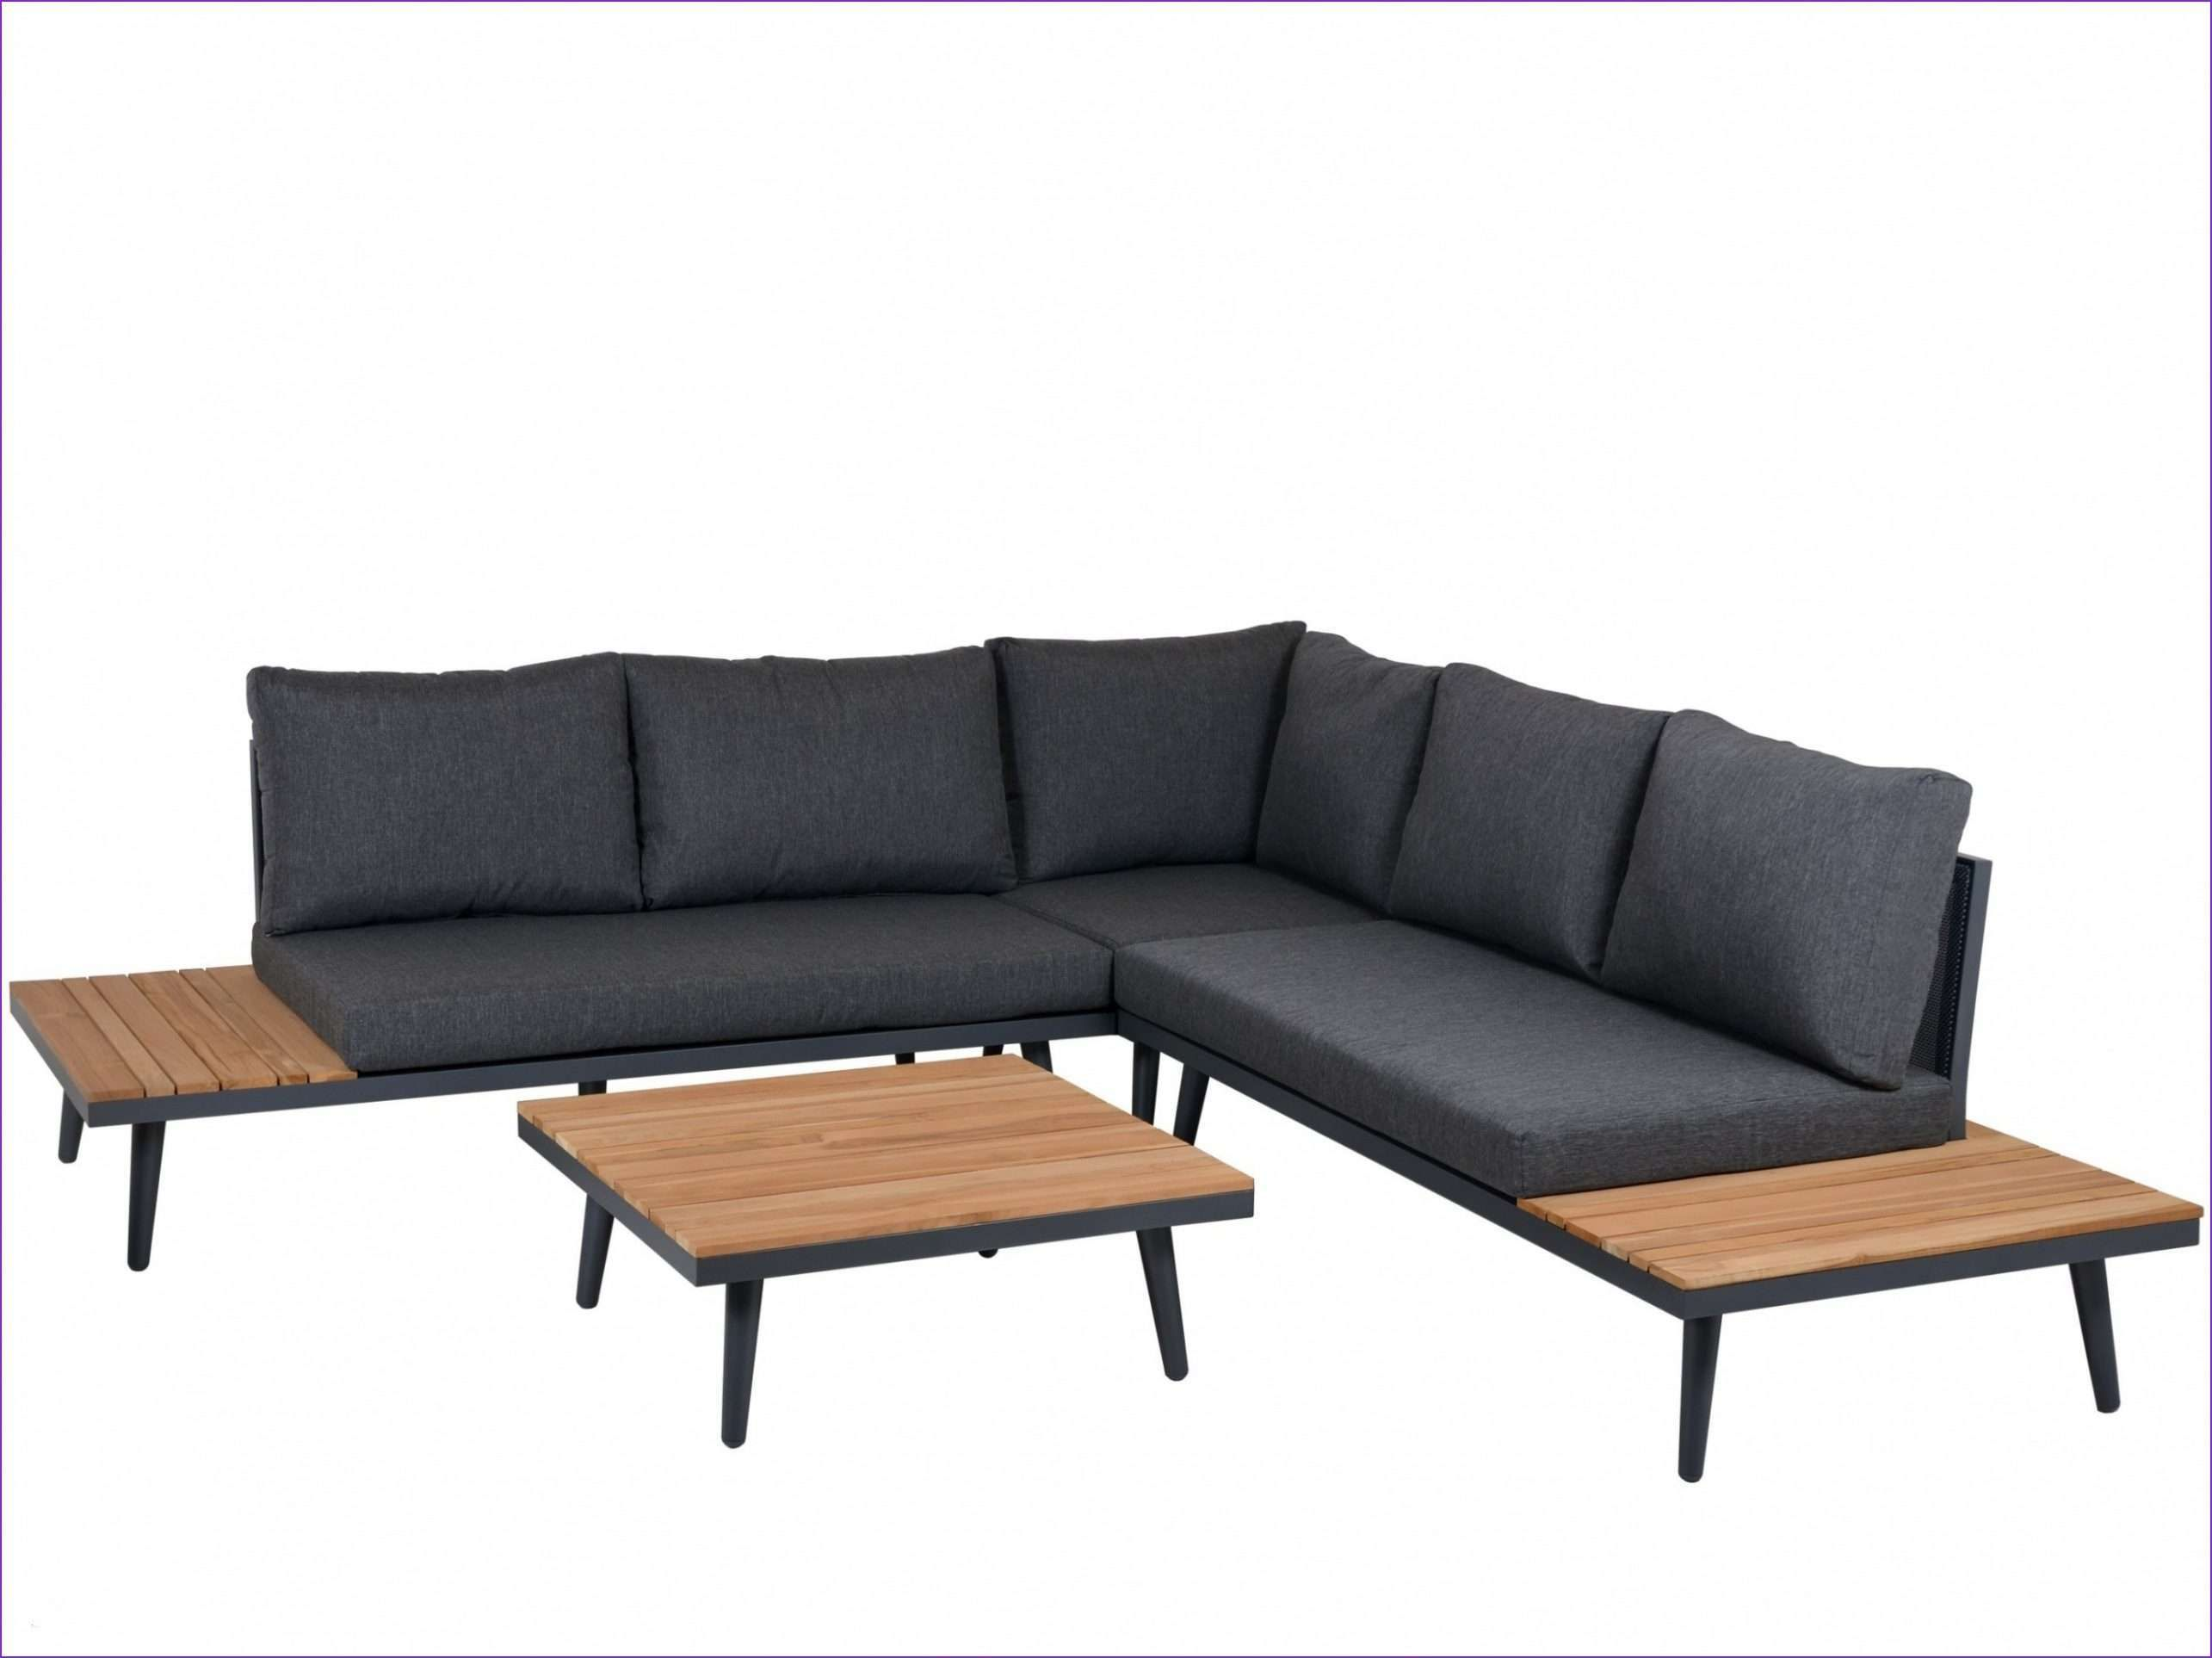 70 Er Jahre Mobel De 2018 12 18t11 28 41 00 00 In 2020 Patio Lounge Furniture Teak Outdoor Furniture Sofa Design